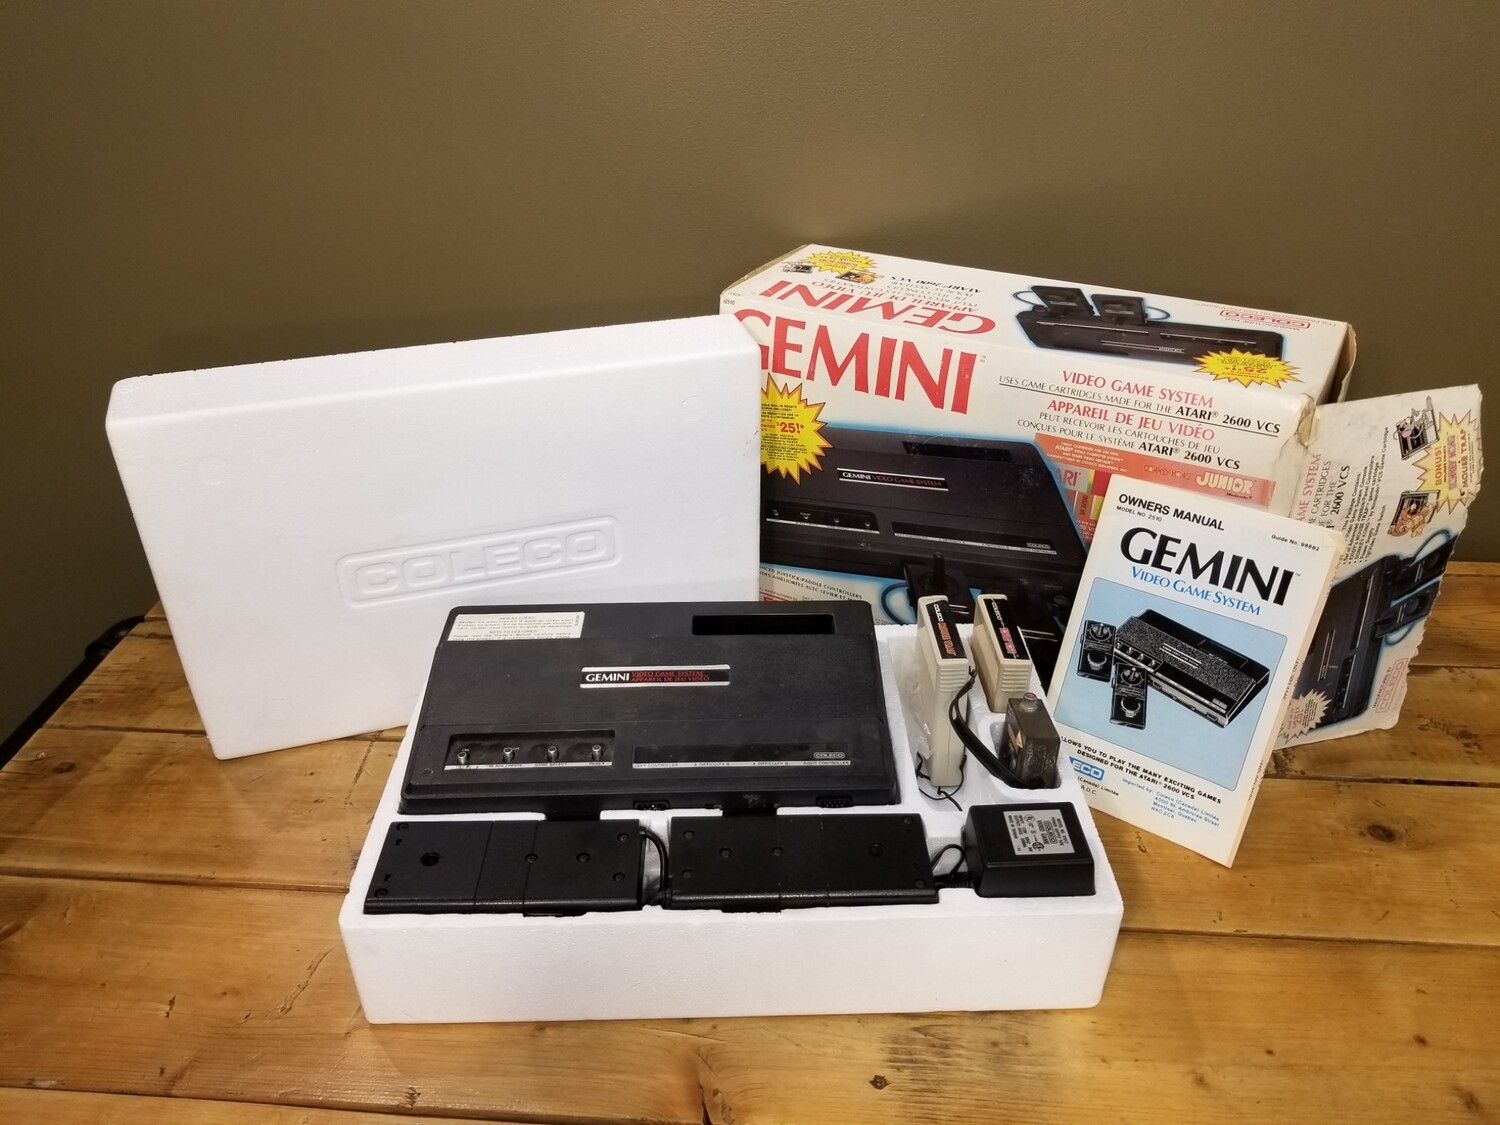 Coleco Gemini Complete Video Game System